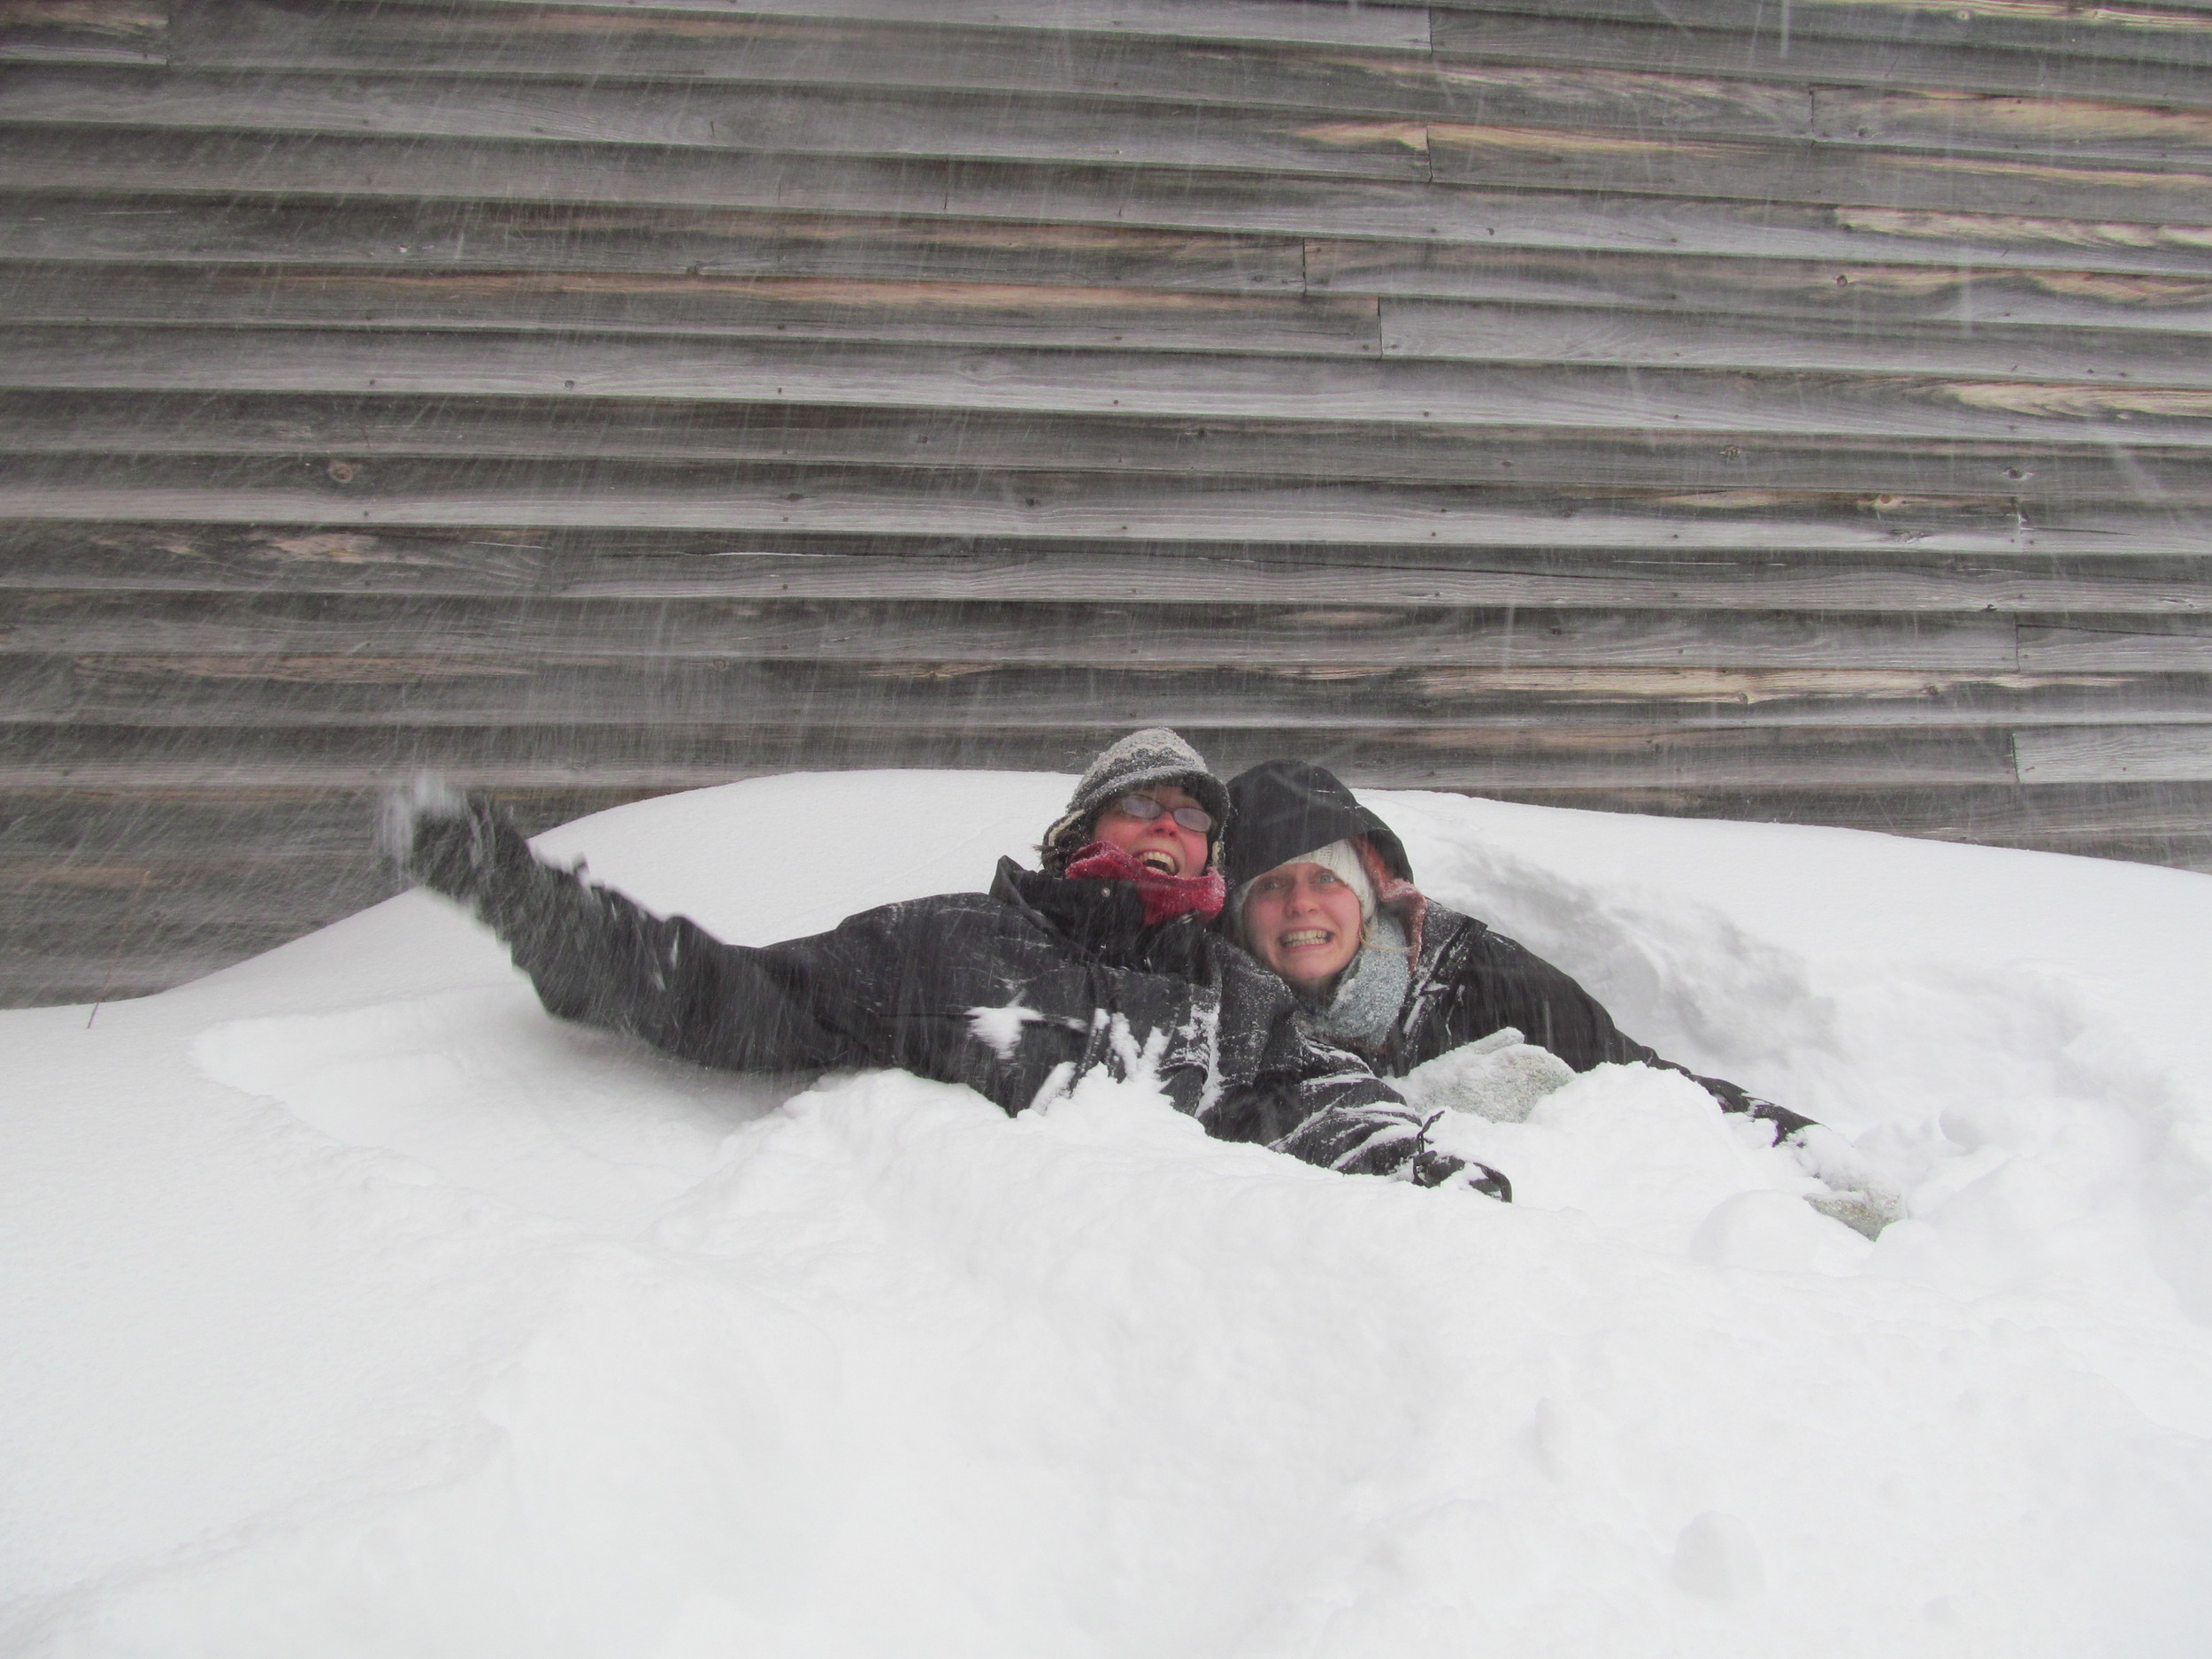 Friends, Meghan and Corinne, playing in a snow drift, January 27, 2015.